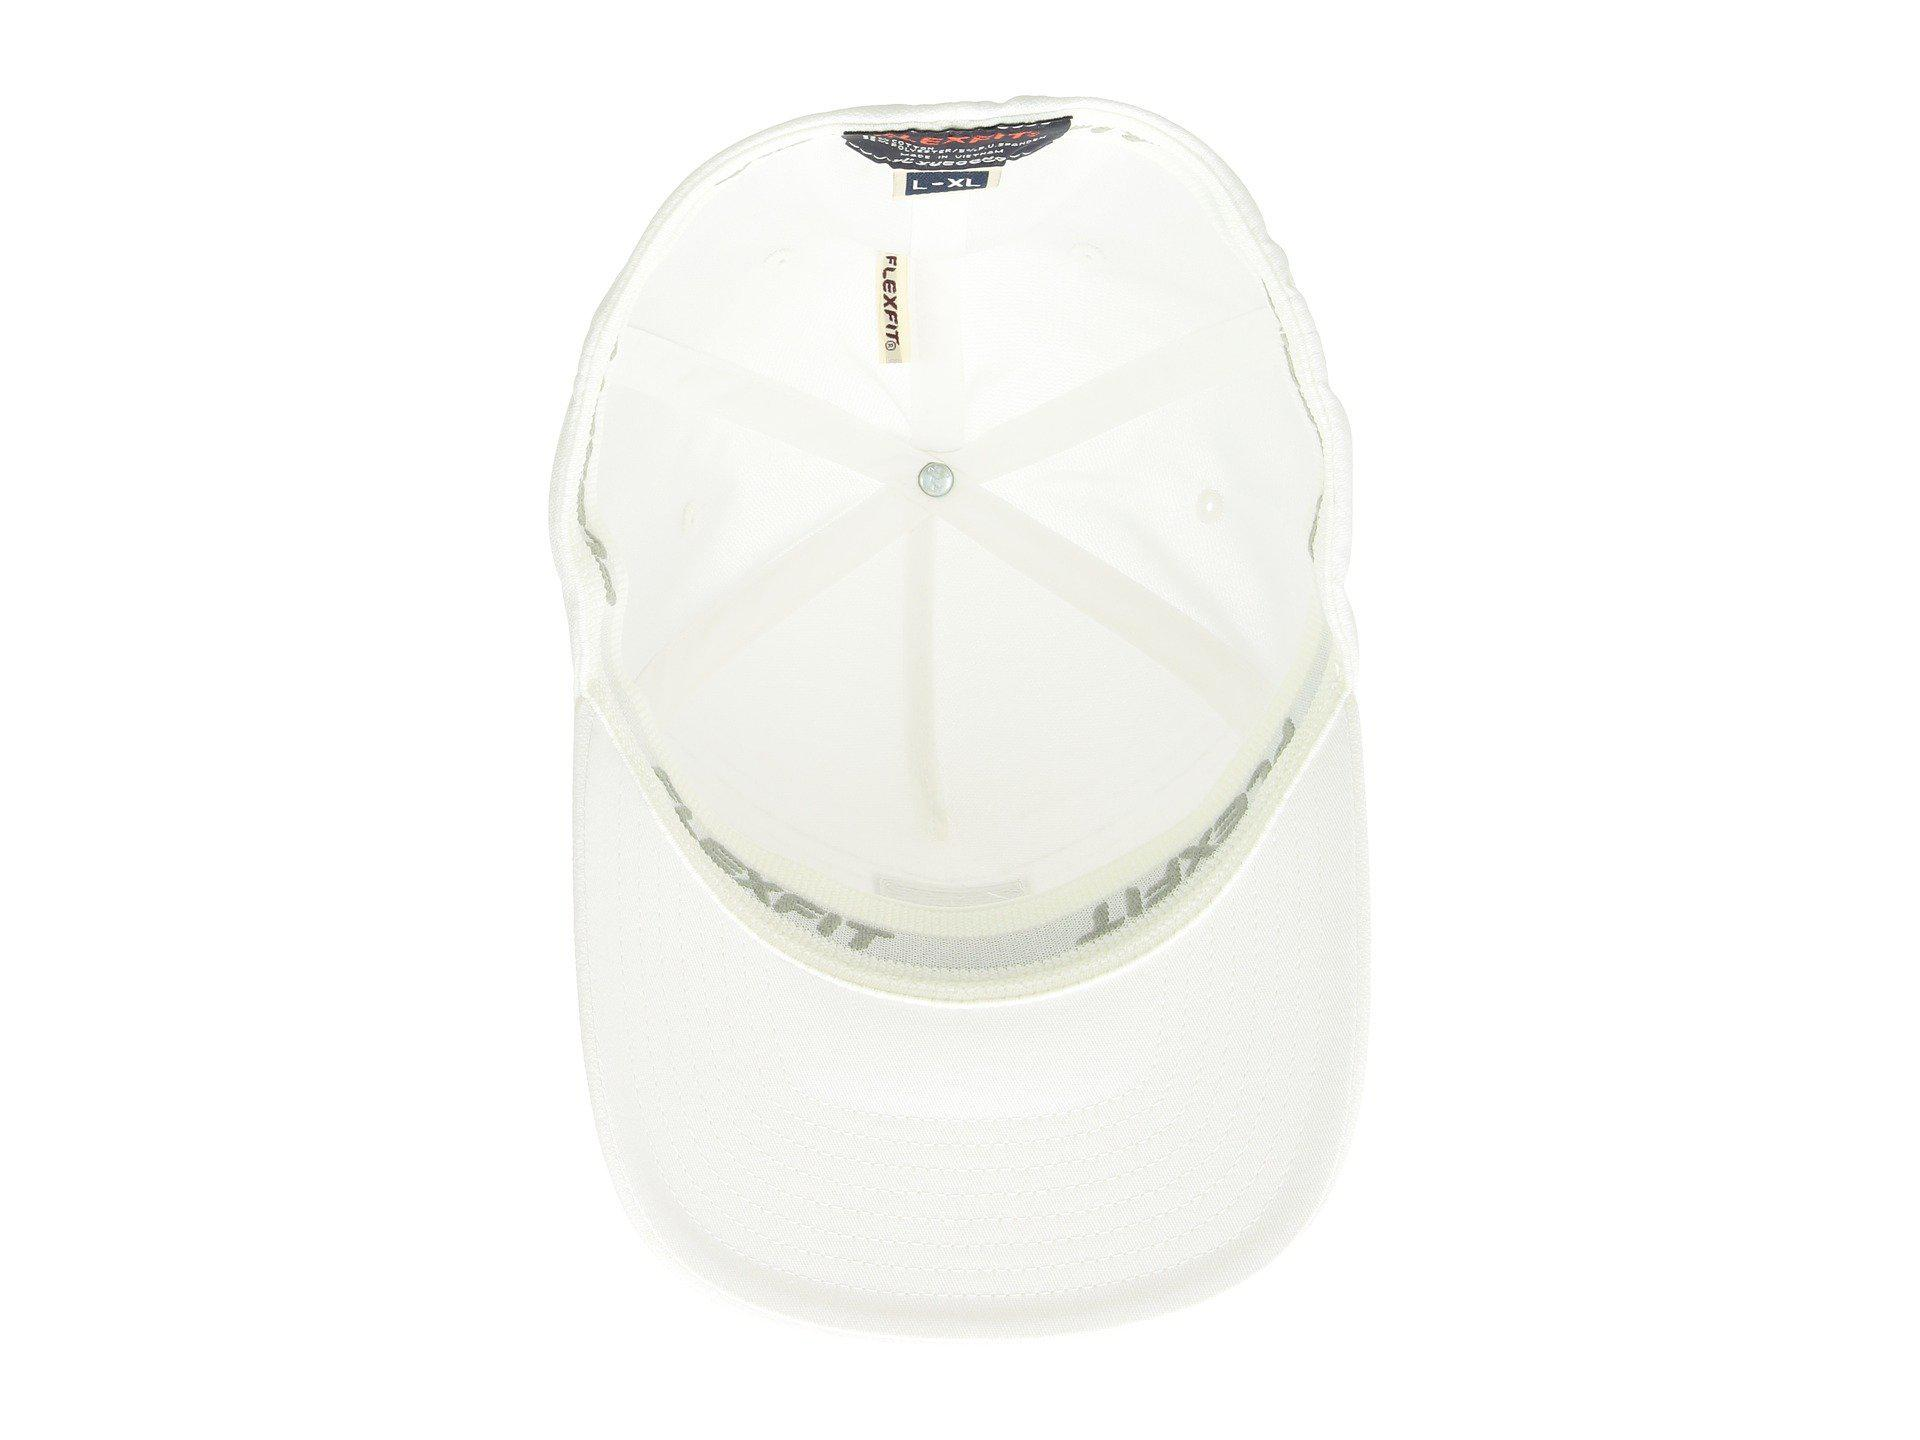 Lyst - Travis Mathew Edmiston (black) Baseball Caps in White for Men 6449c81d7442